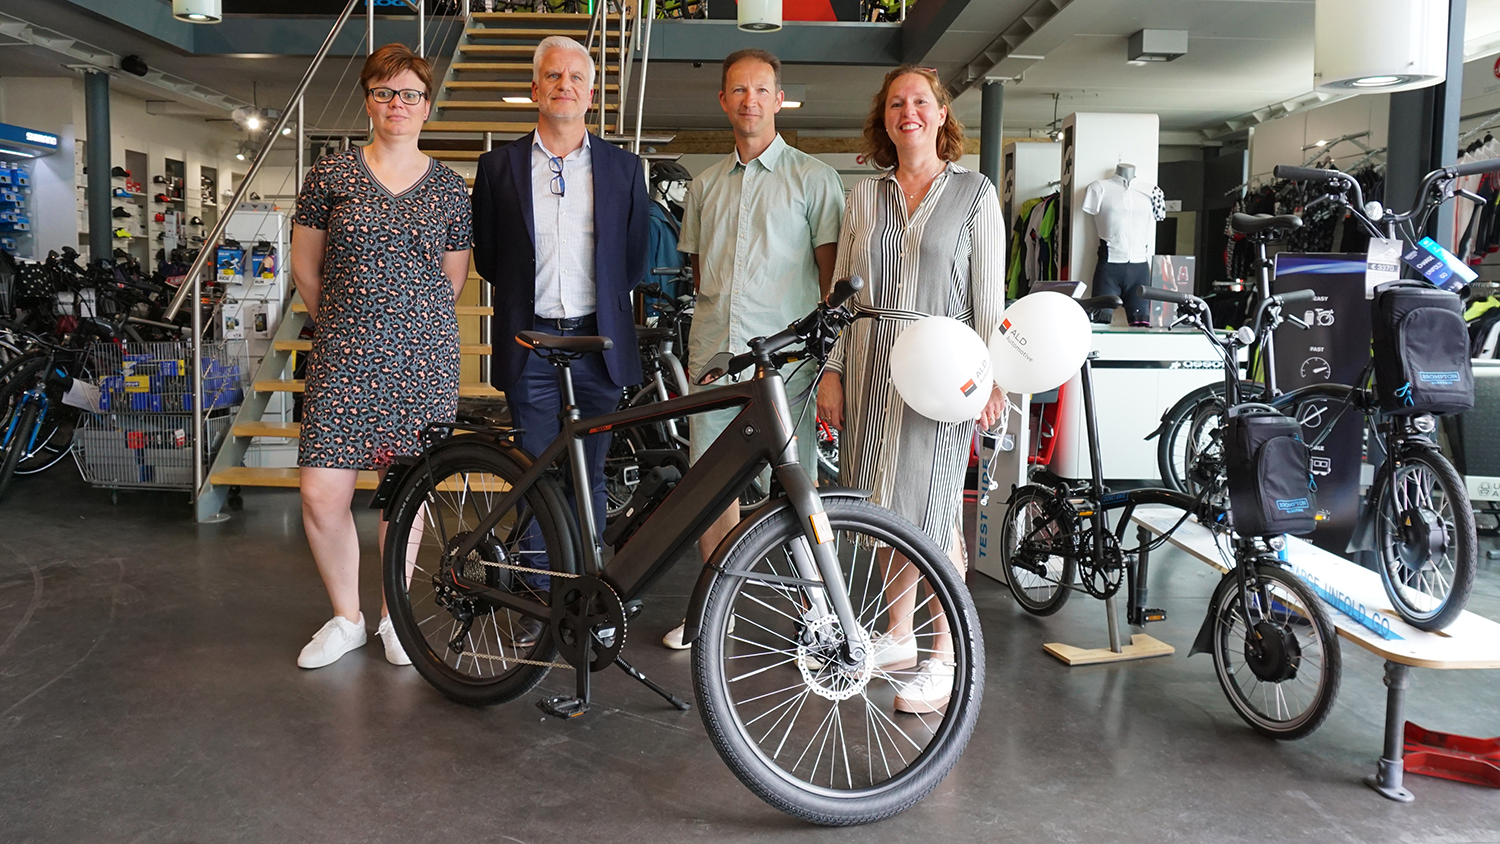 Atlas Copco en ALD Automotive zijn pioniers in fietsleasing